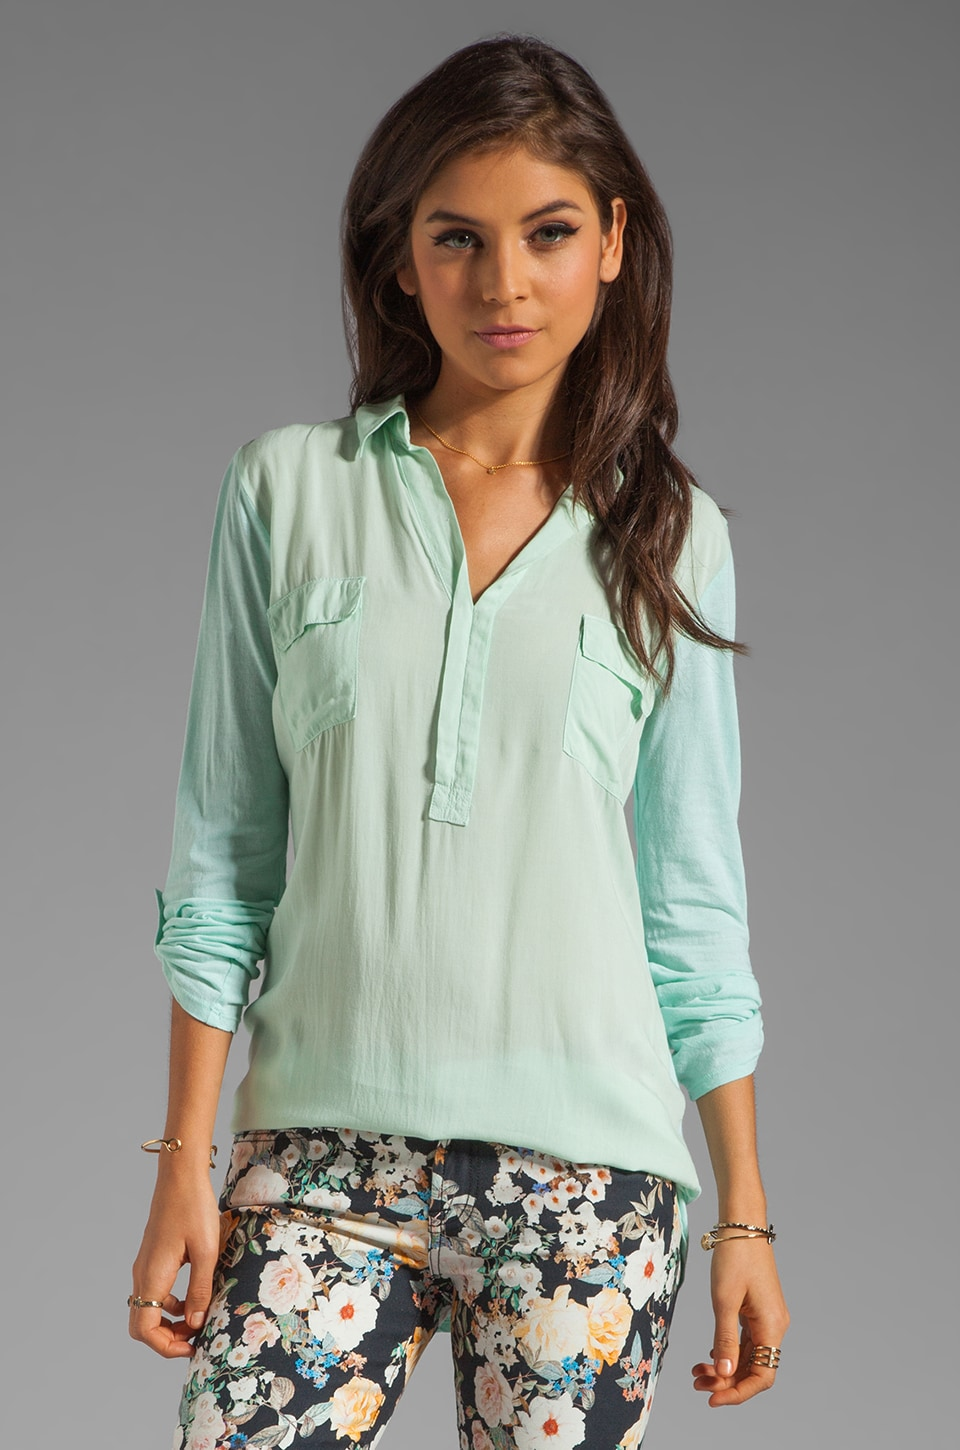 Splendid Shirting Collar Top in Julep